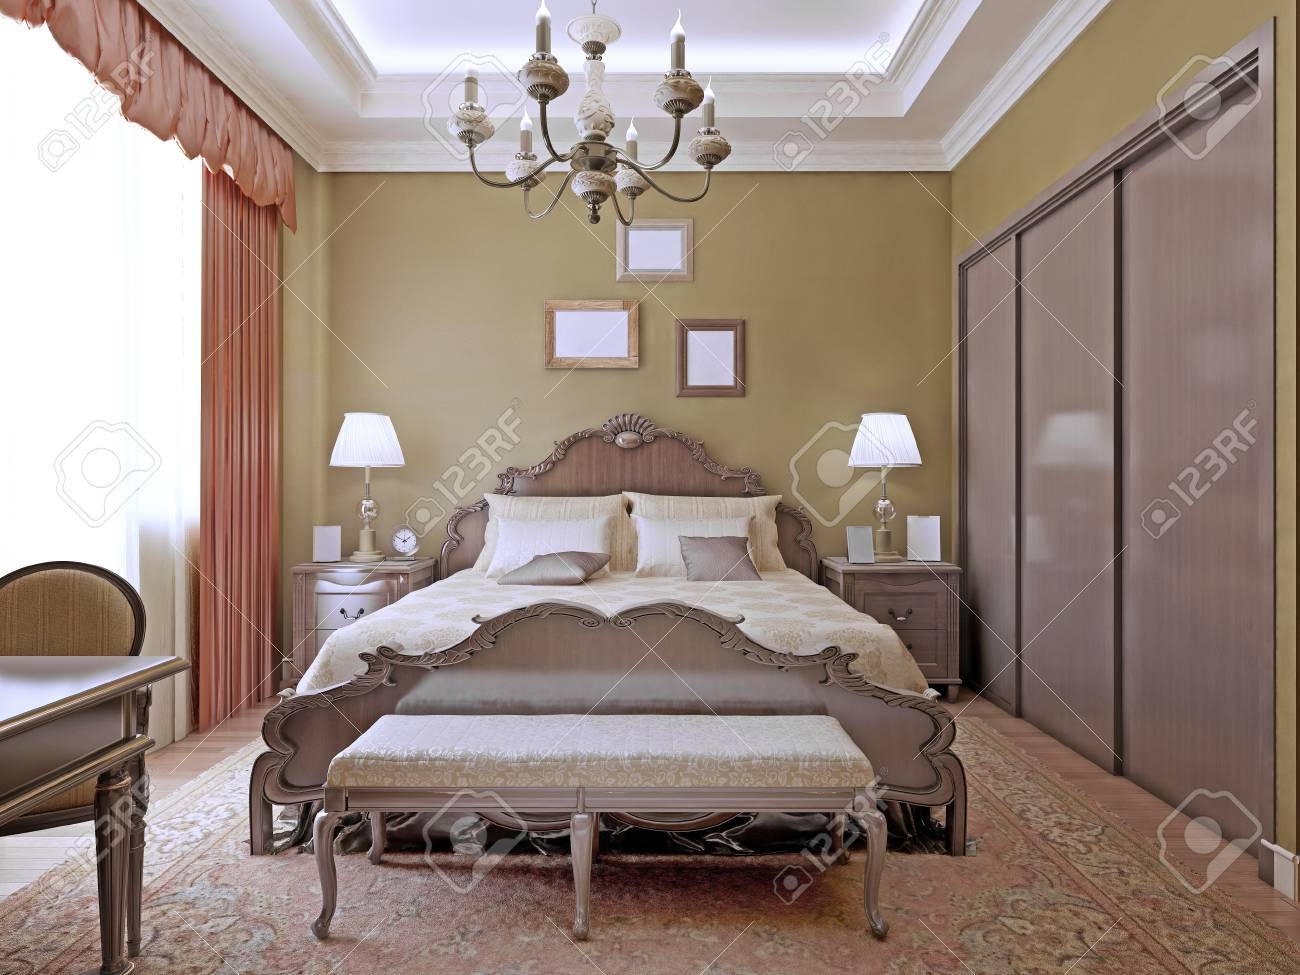 Art deco bedroom with ceiling neon lights.Comfortable room with..